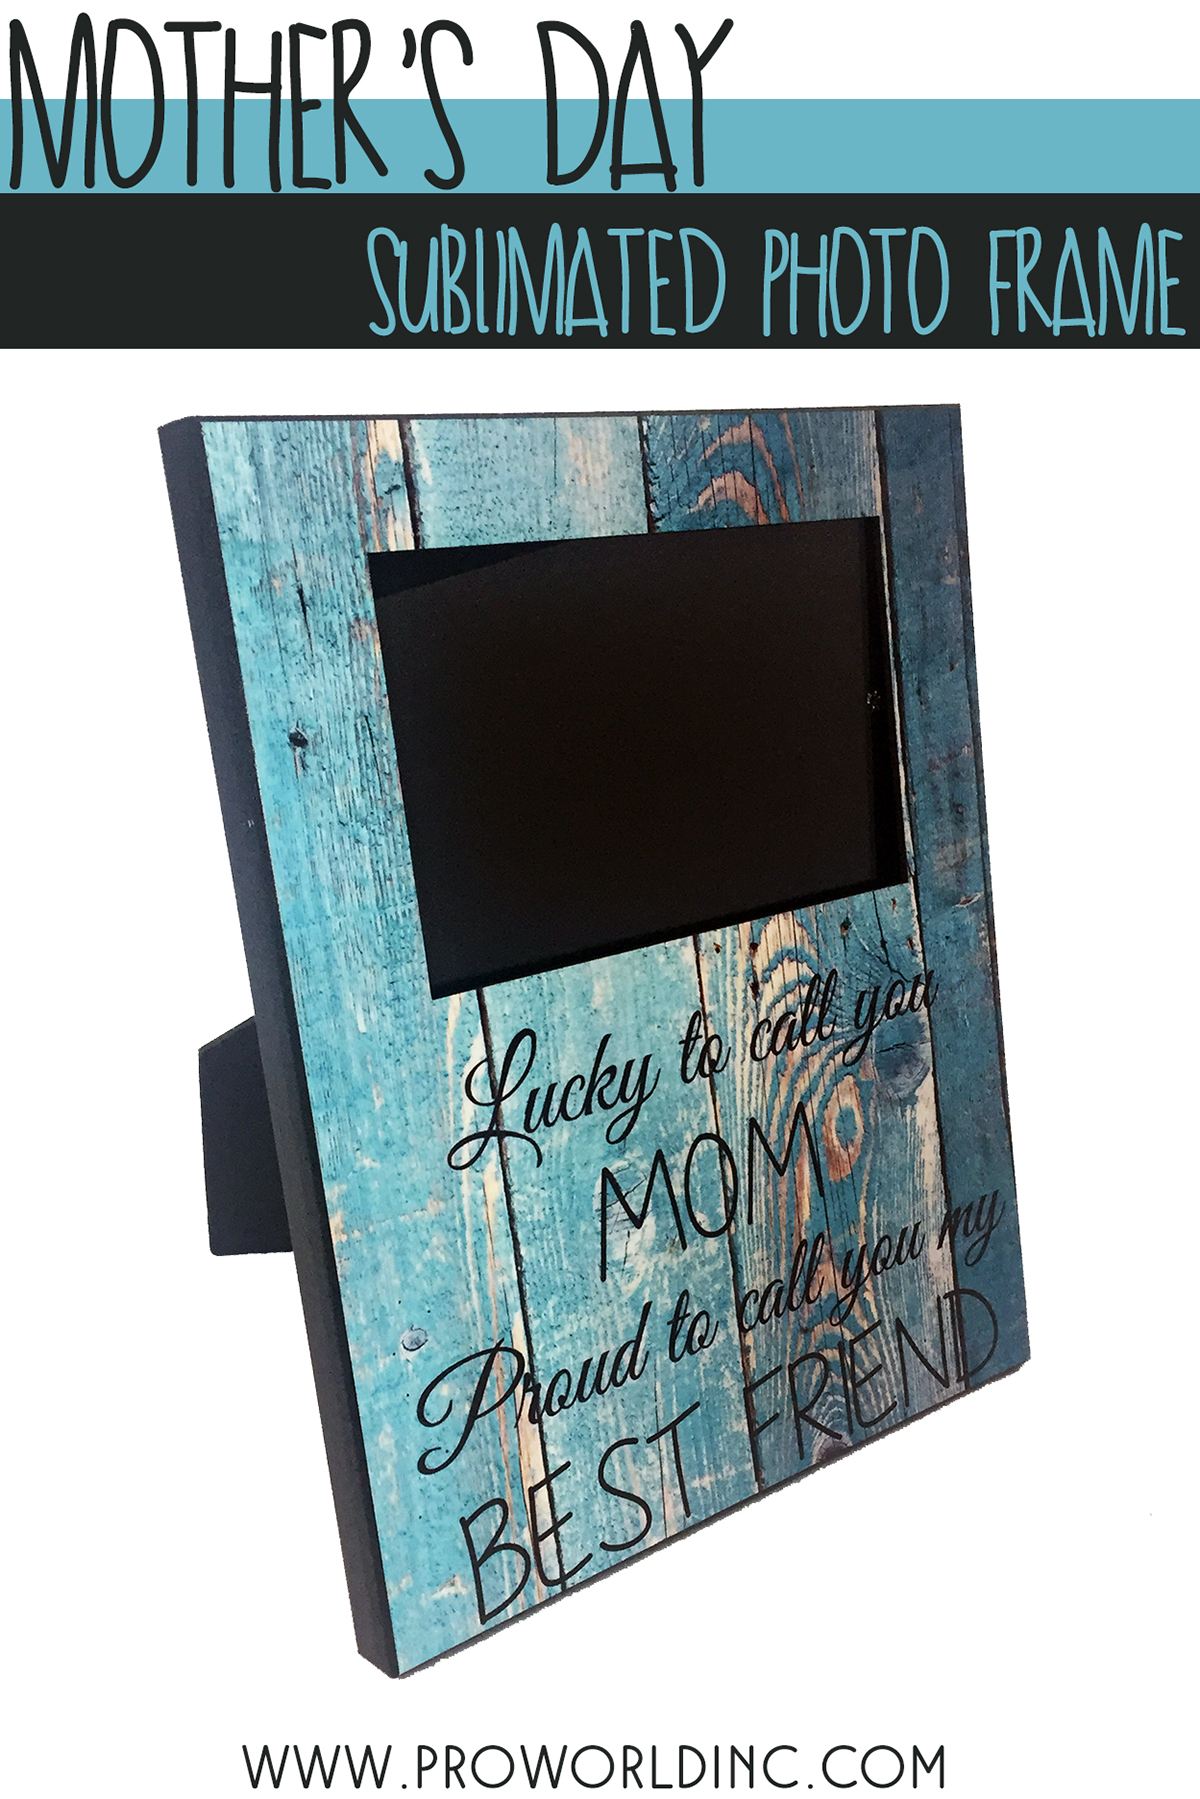 Mother's Day Sublimated Photo Frame